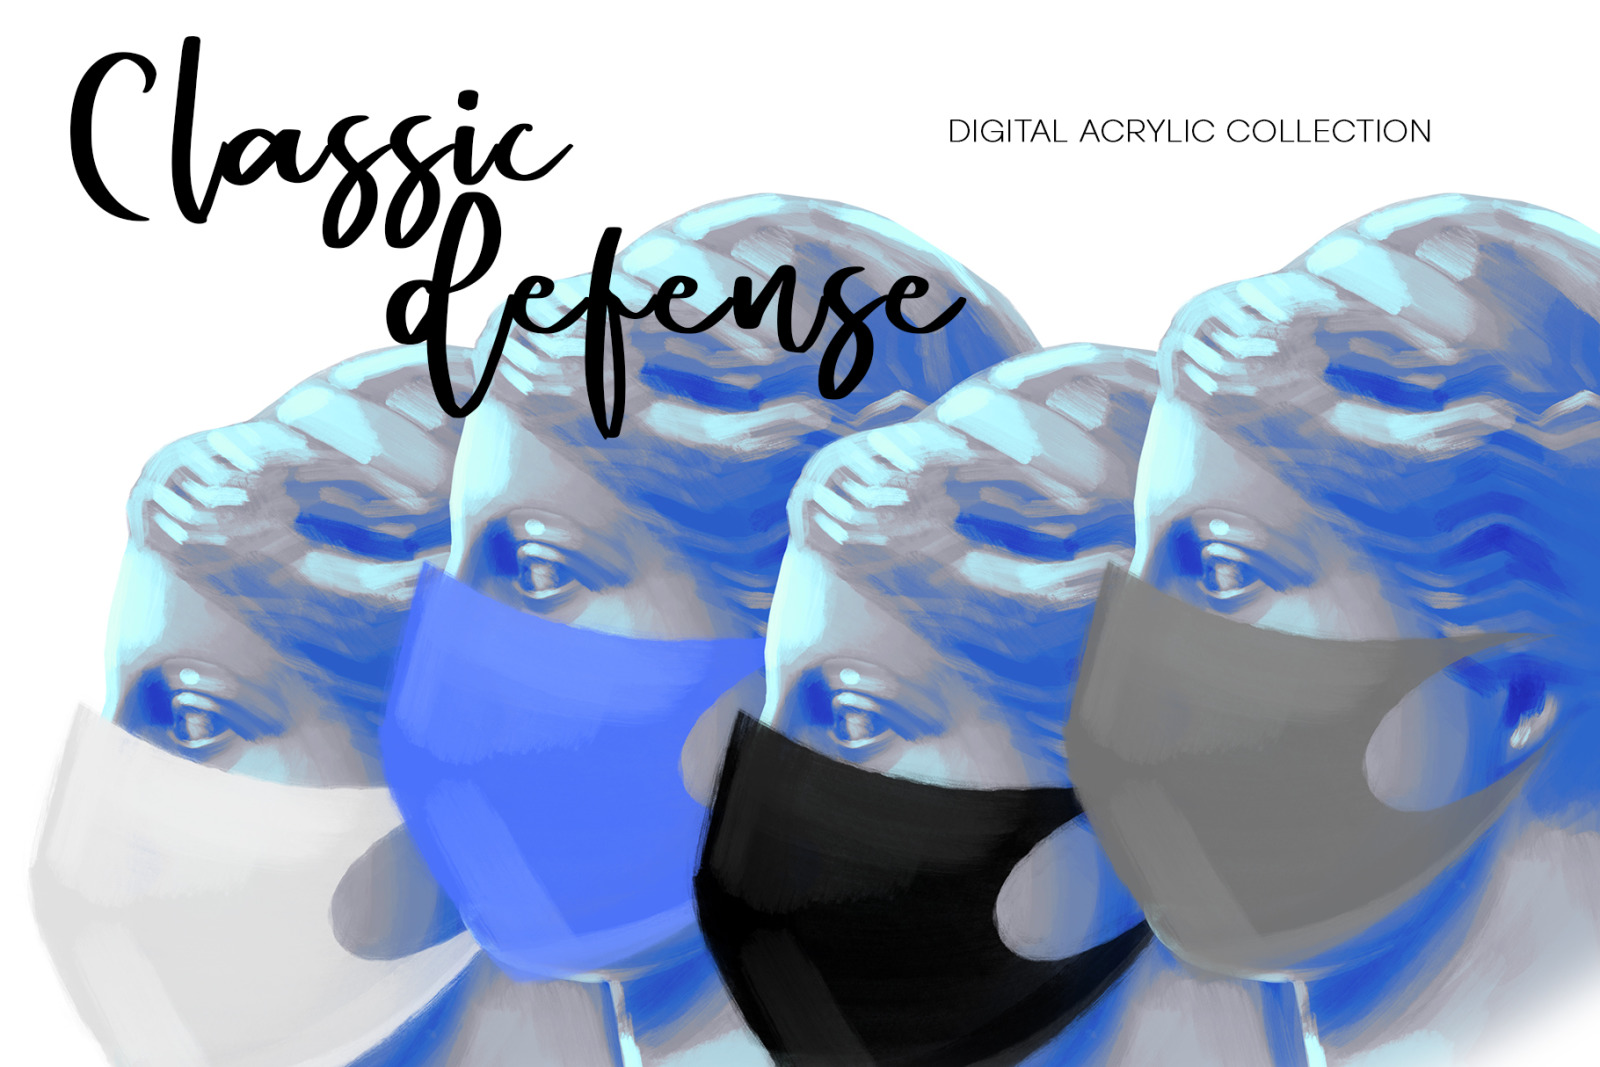 Ancient design - blooming classics. Classic defense